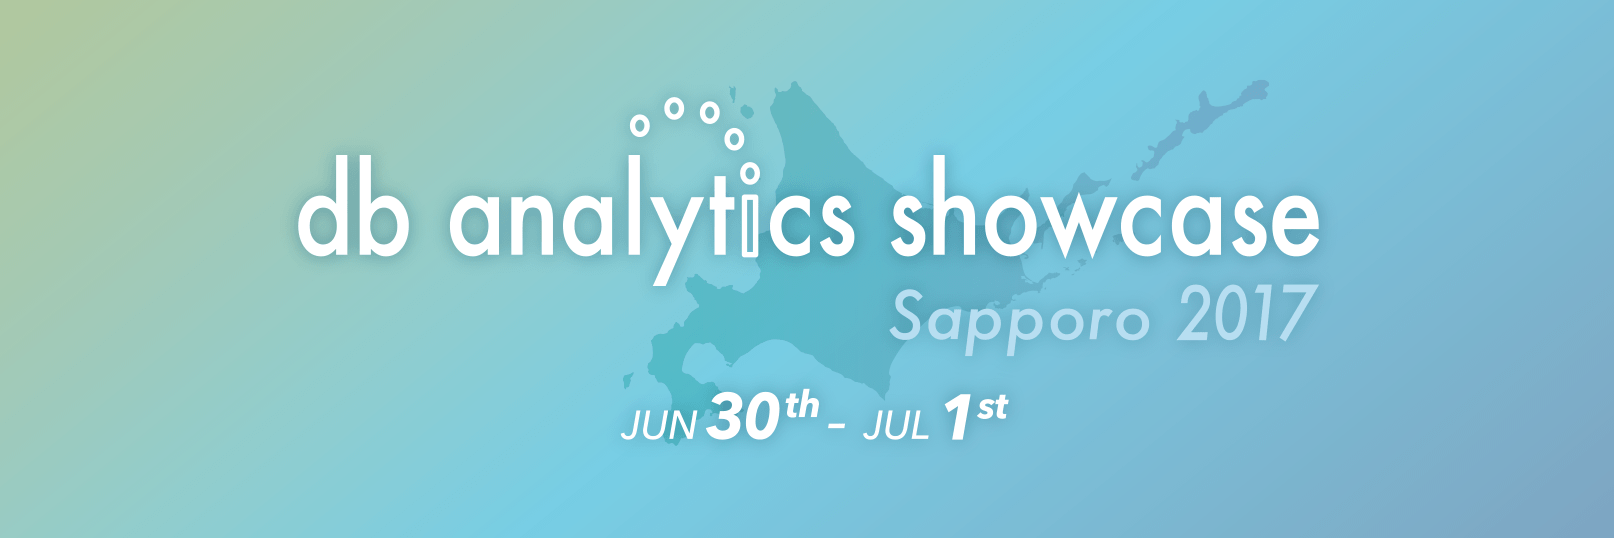 db analytics showcase Sapporo 2017